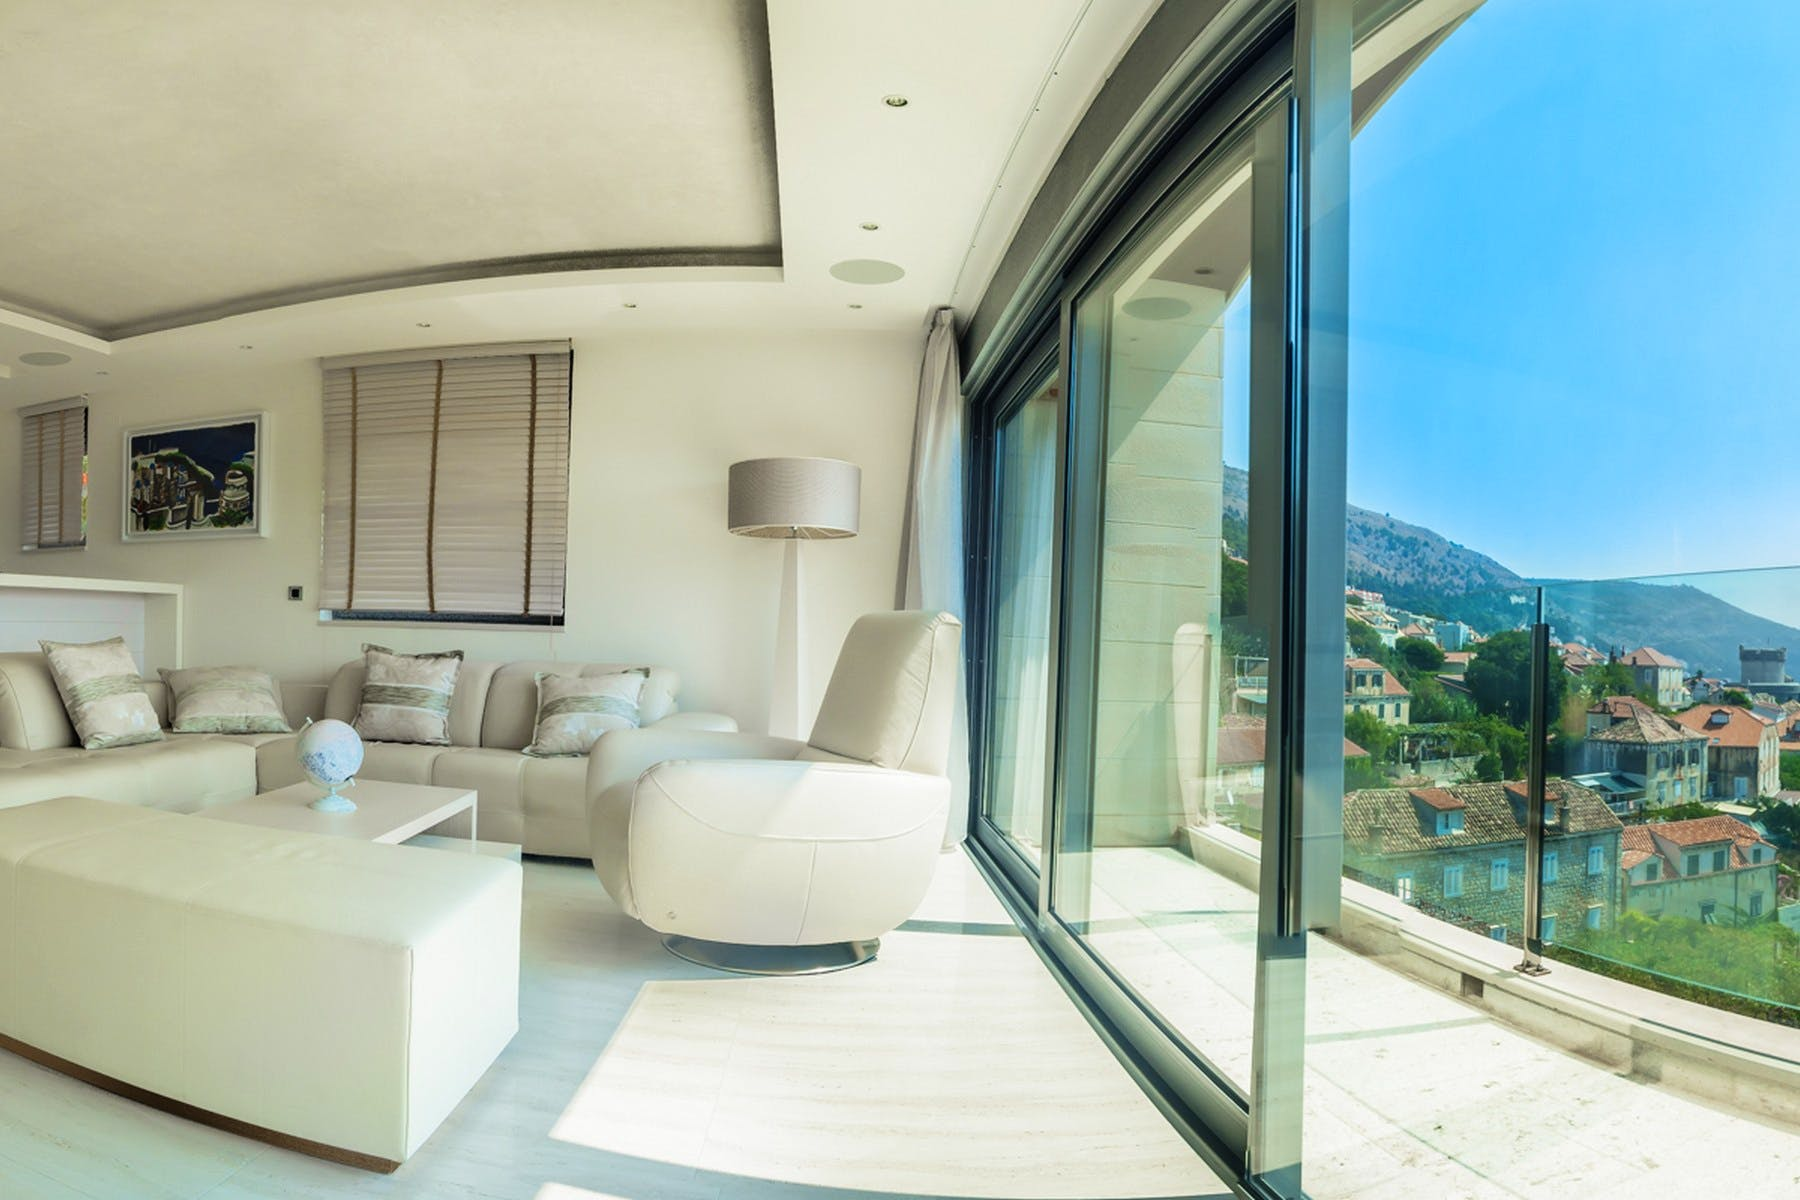 Living room with the balcony with beautiful views